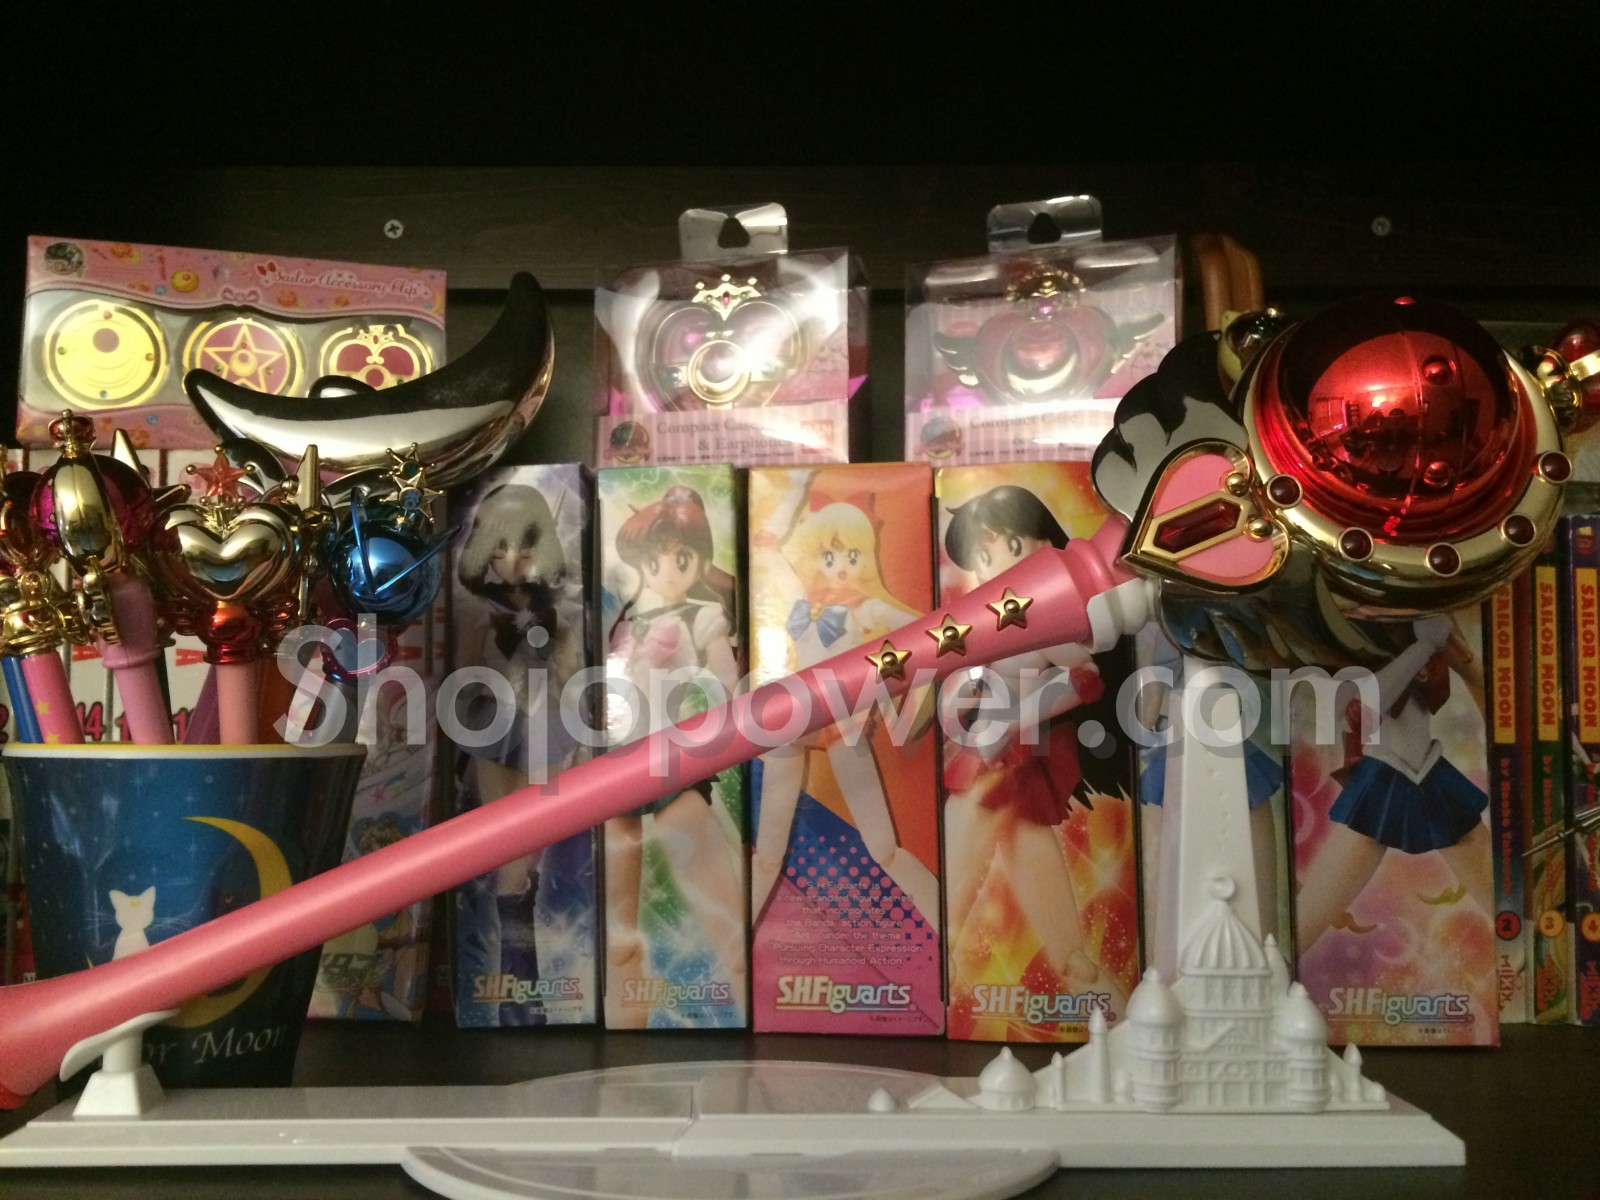 A Sailor Moon merchandise collection with the Cutie Moon rod, pointers and Figuarts